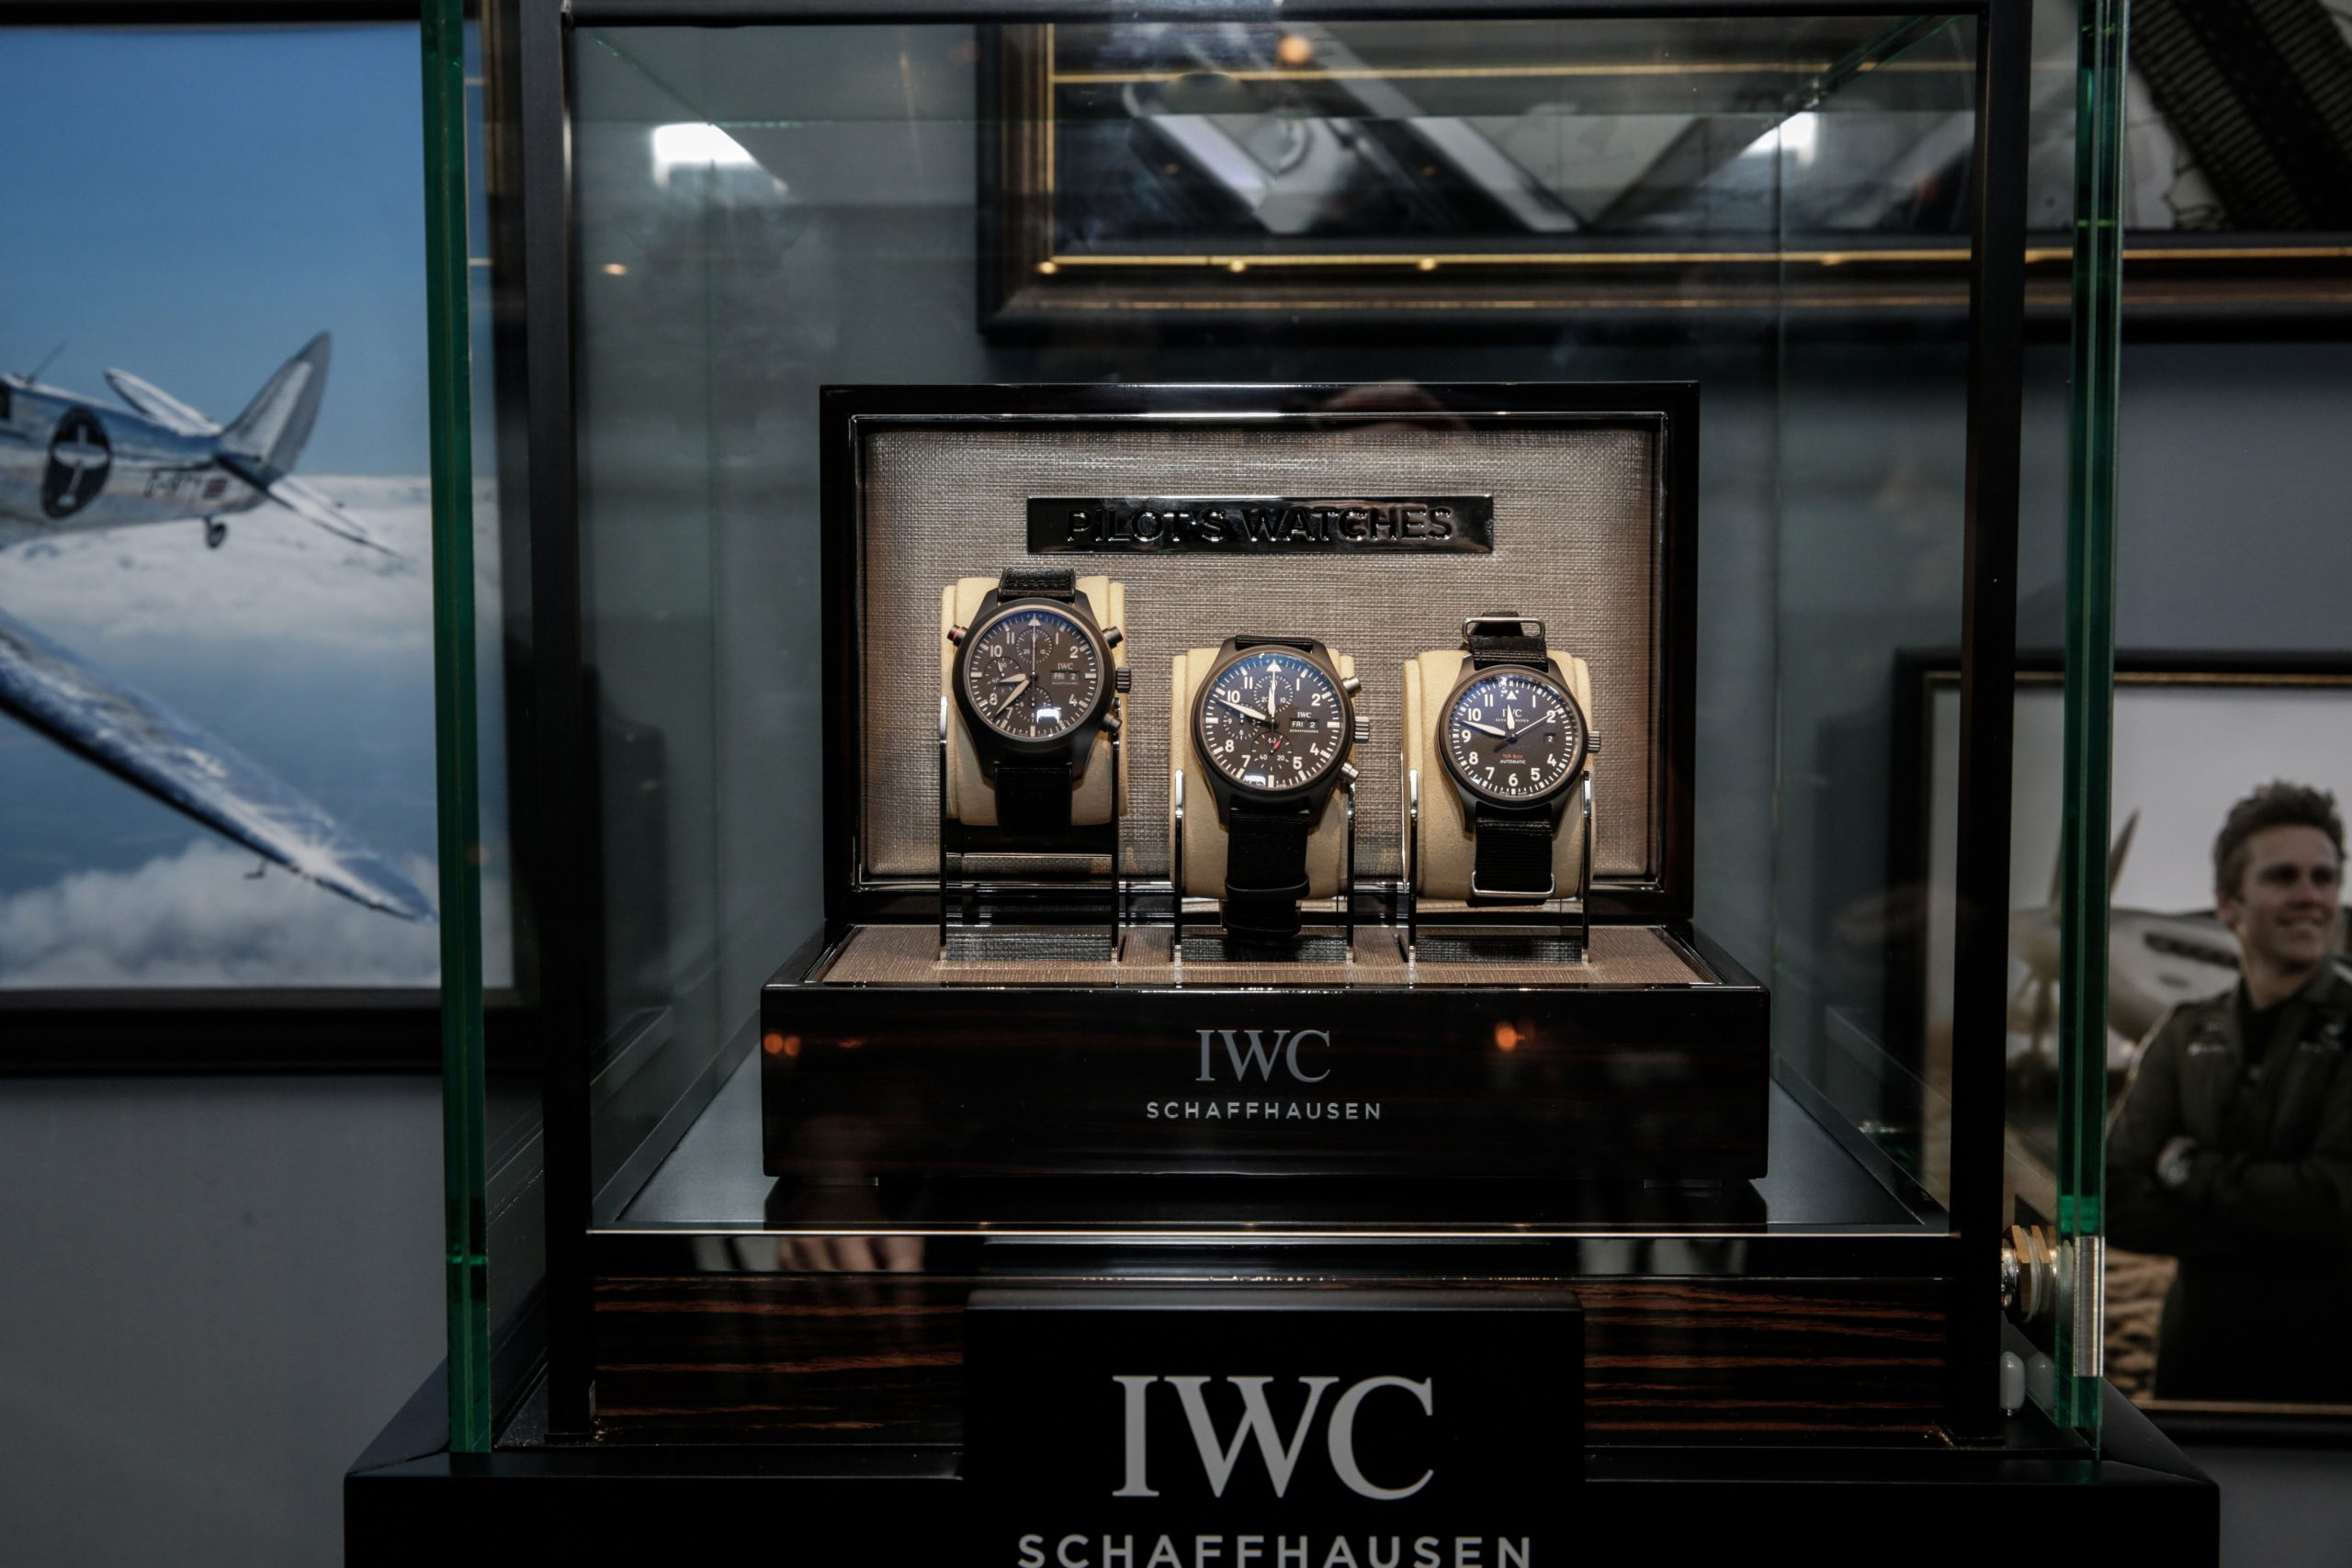 EVENT: IWC unveil the 2019 Pilot's Collection at cosy winter speakeasy in Sydney, including the stunning Timezoner and Ceratanium TOP GUN